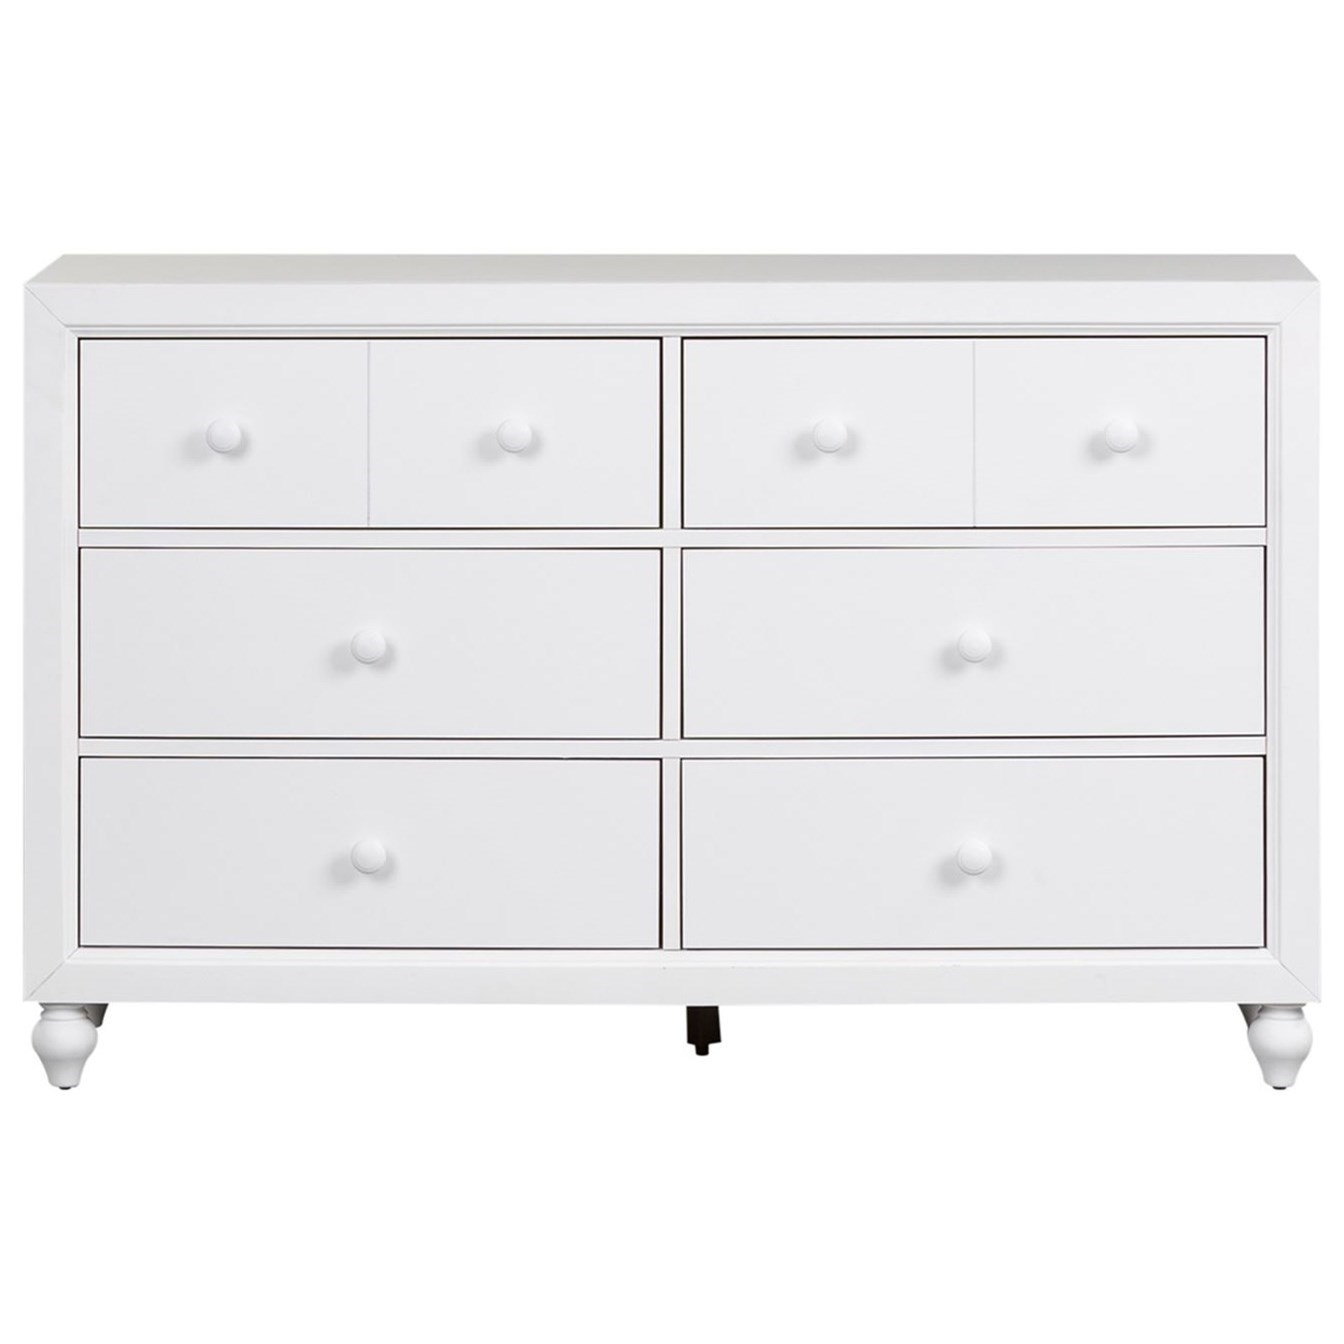 Cottage View 6 Drawer Dresser by Liberty Furniture at Prime Brothers Furniture